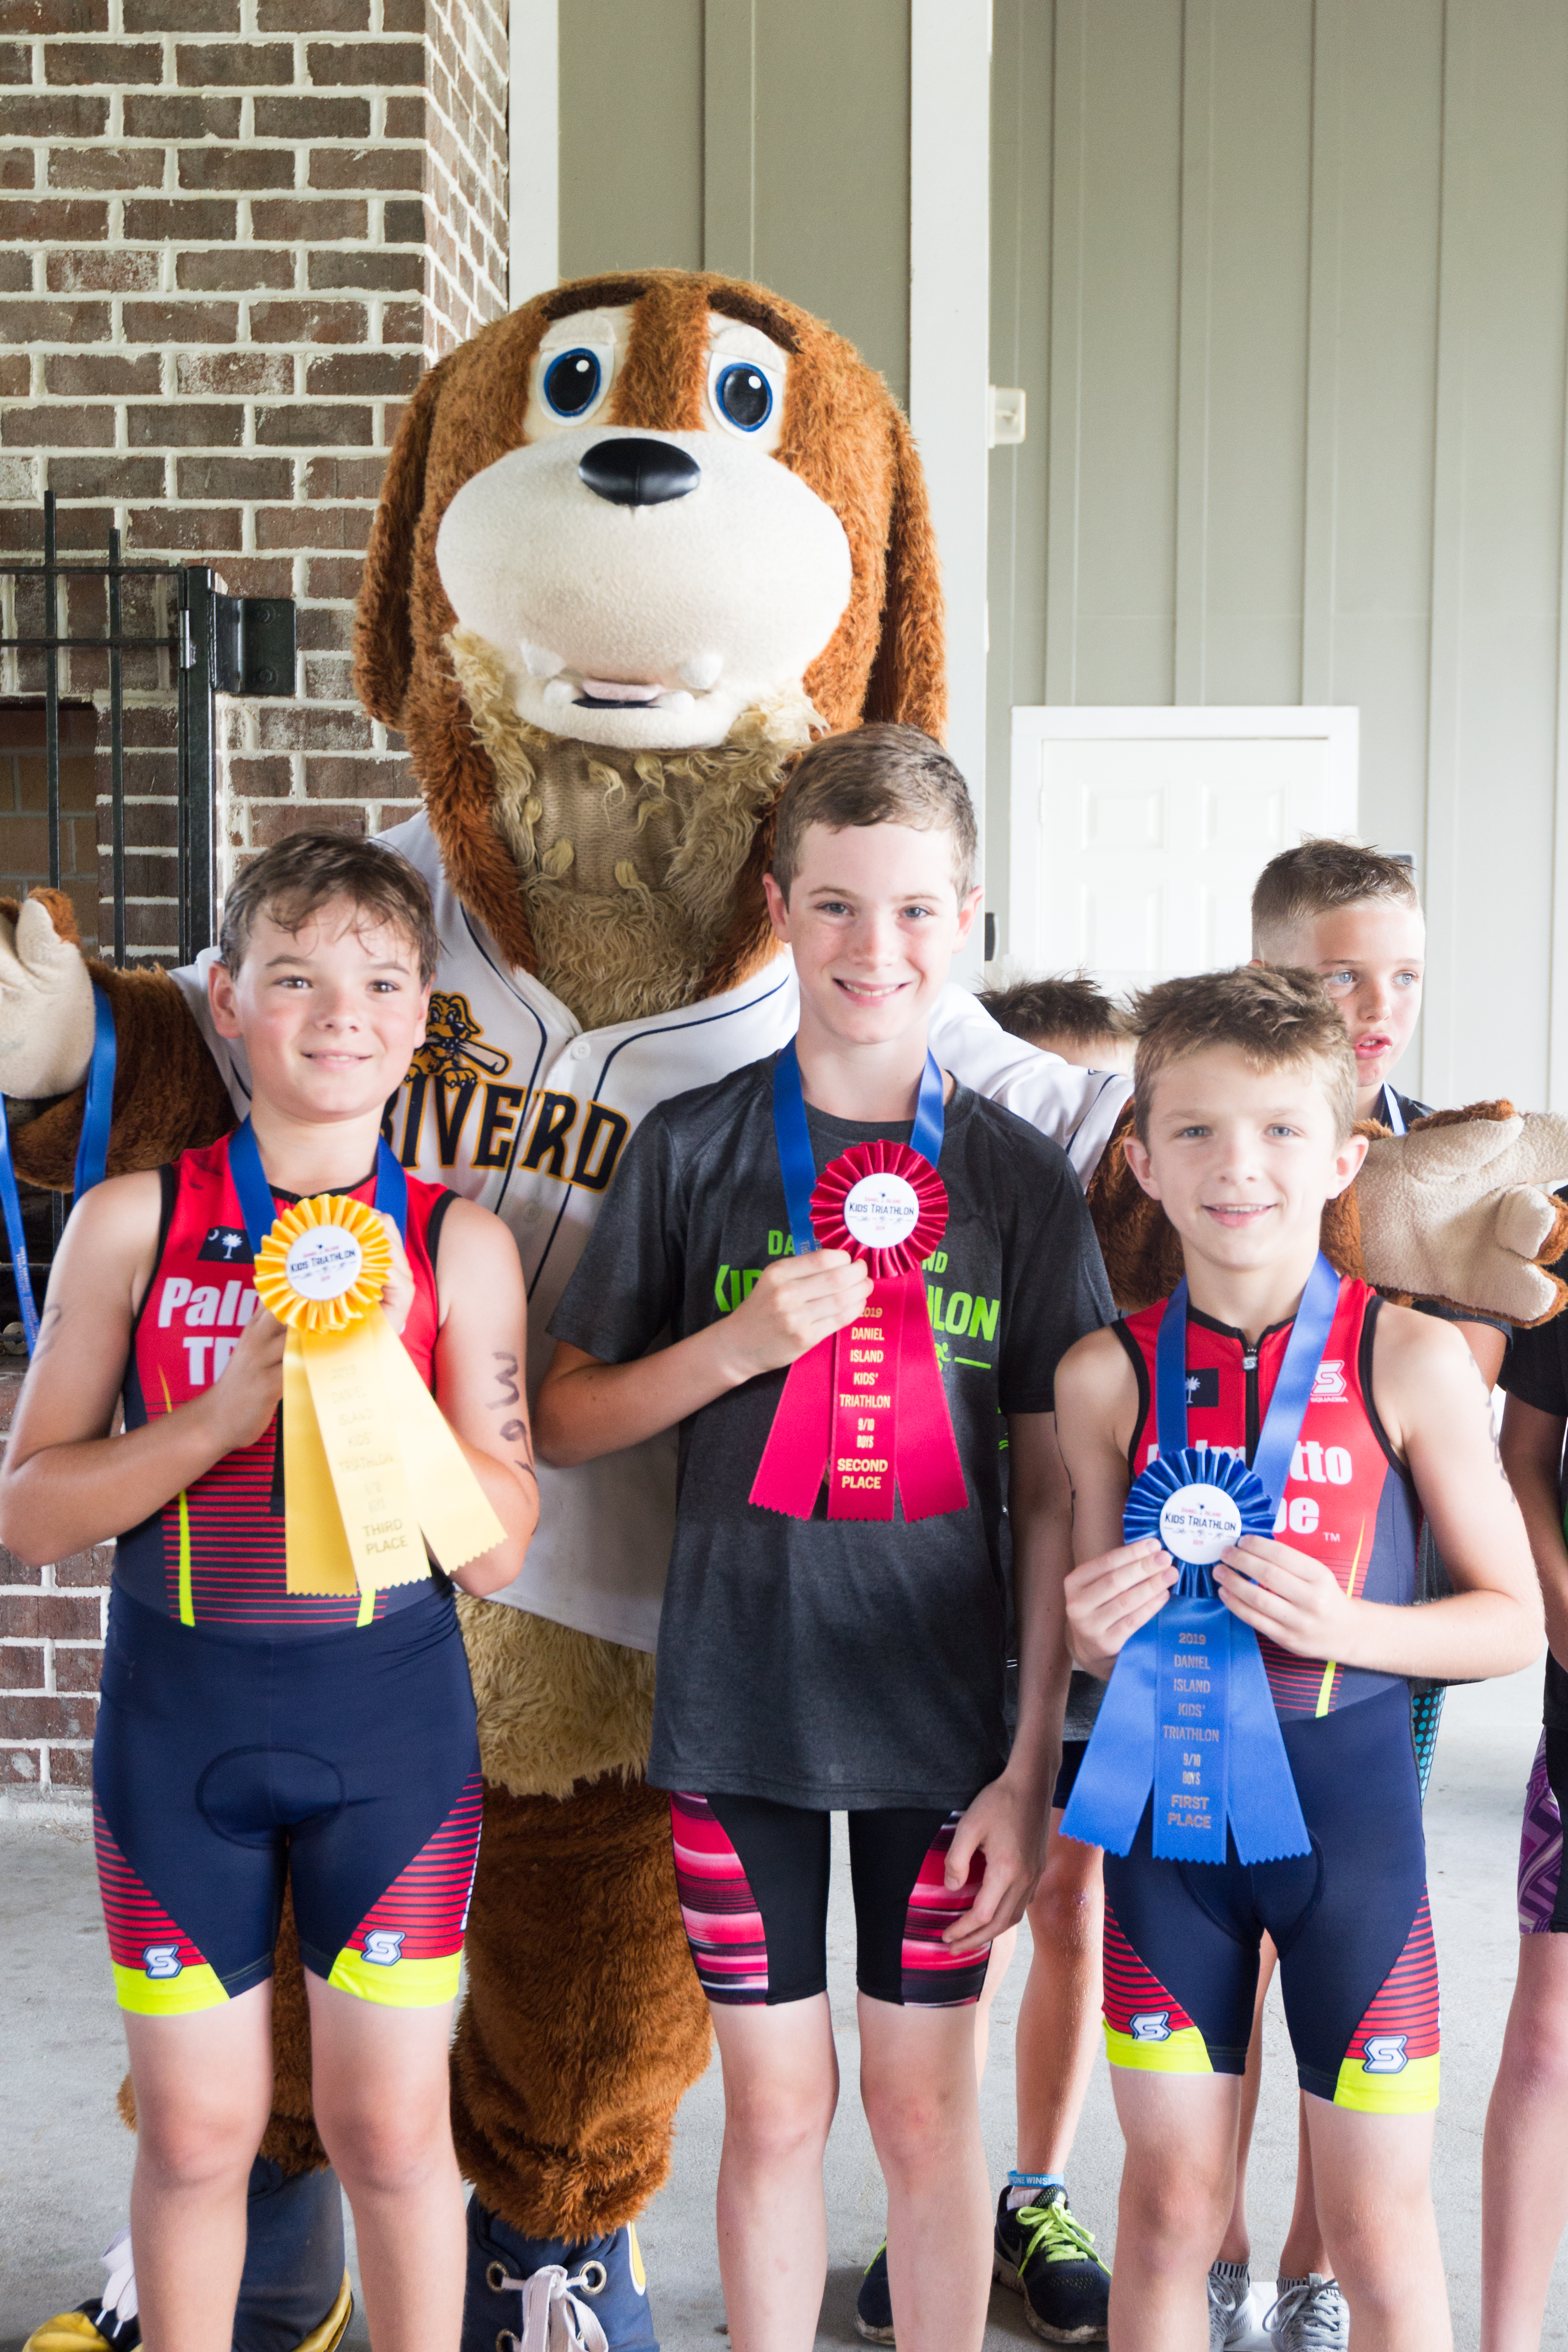 Winners in the 9-10 year old boys' category (100 meter swim, 2.4 mile bike, ½ mile run): Jack Ham (1st), Connor Good (2nd) and Sean Wilson (3rd).